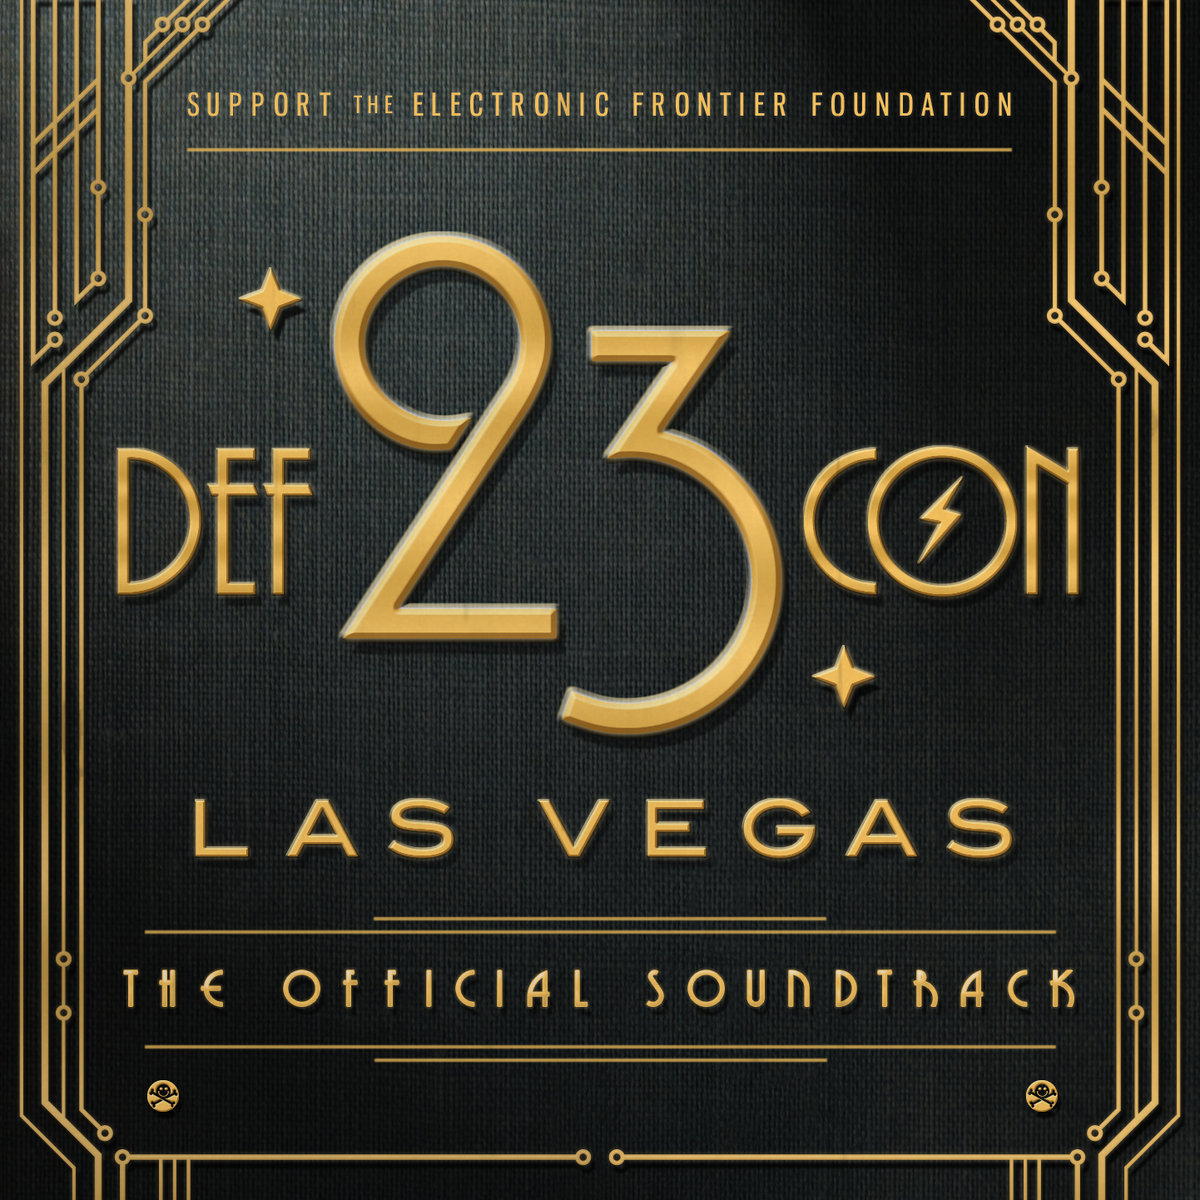 Left/Right & Trespass - Here @ 'DEF CON 23: The Official Soundtrack' album (bass, charity)